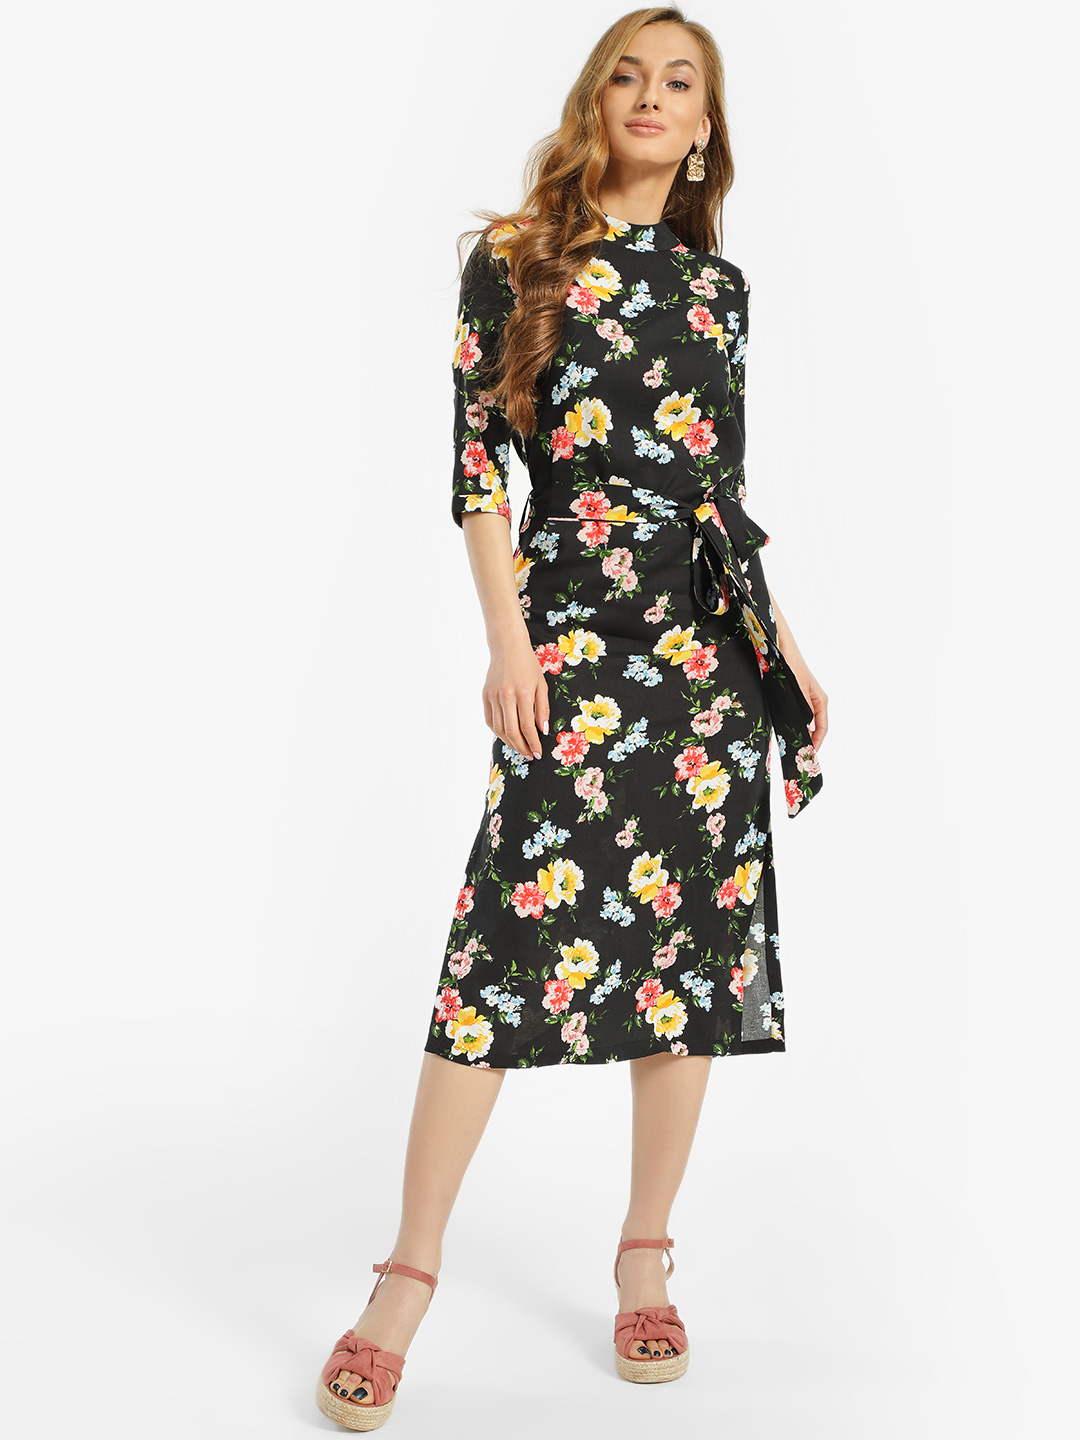 Miaminx Black Floral Print Tie-Knot Midi Dress 1